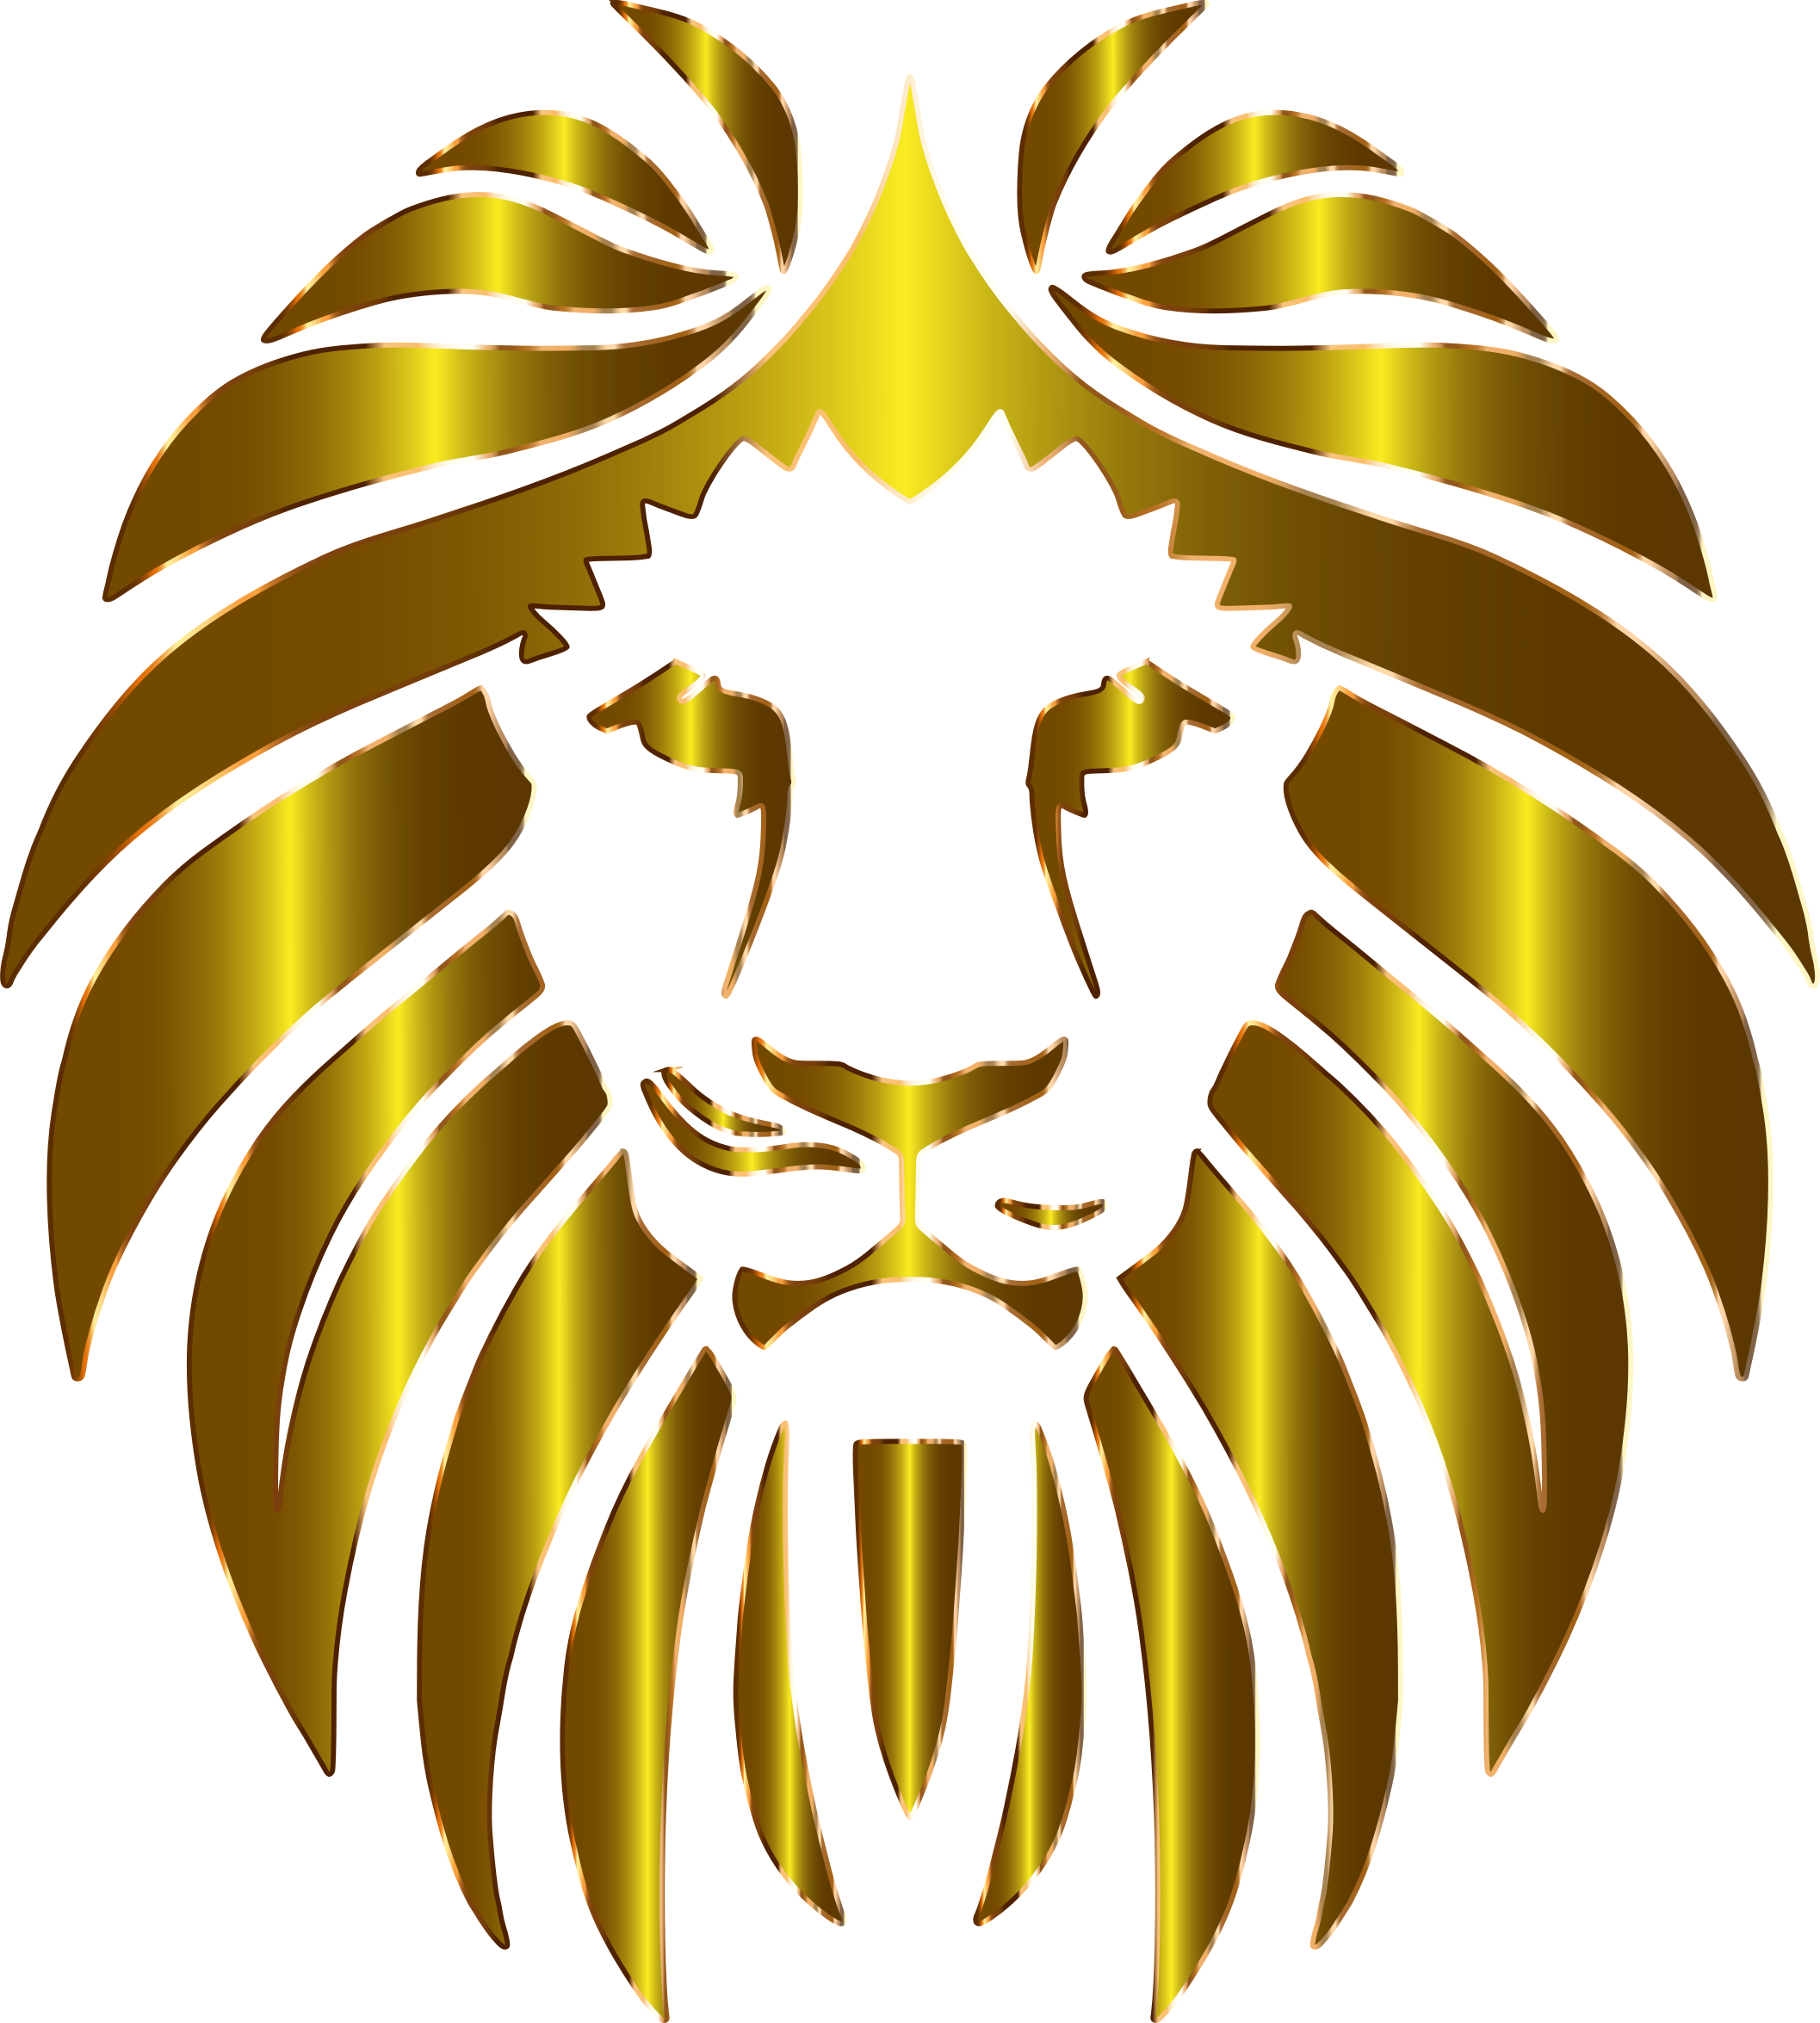 No money clipart no background image free library Clipart - Prismatic Lion 10 No Background image free library